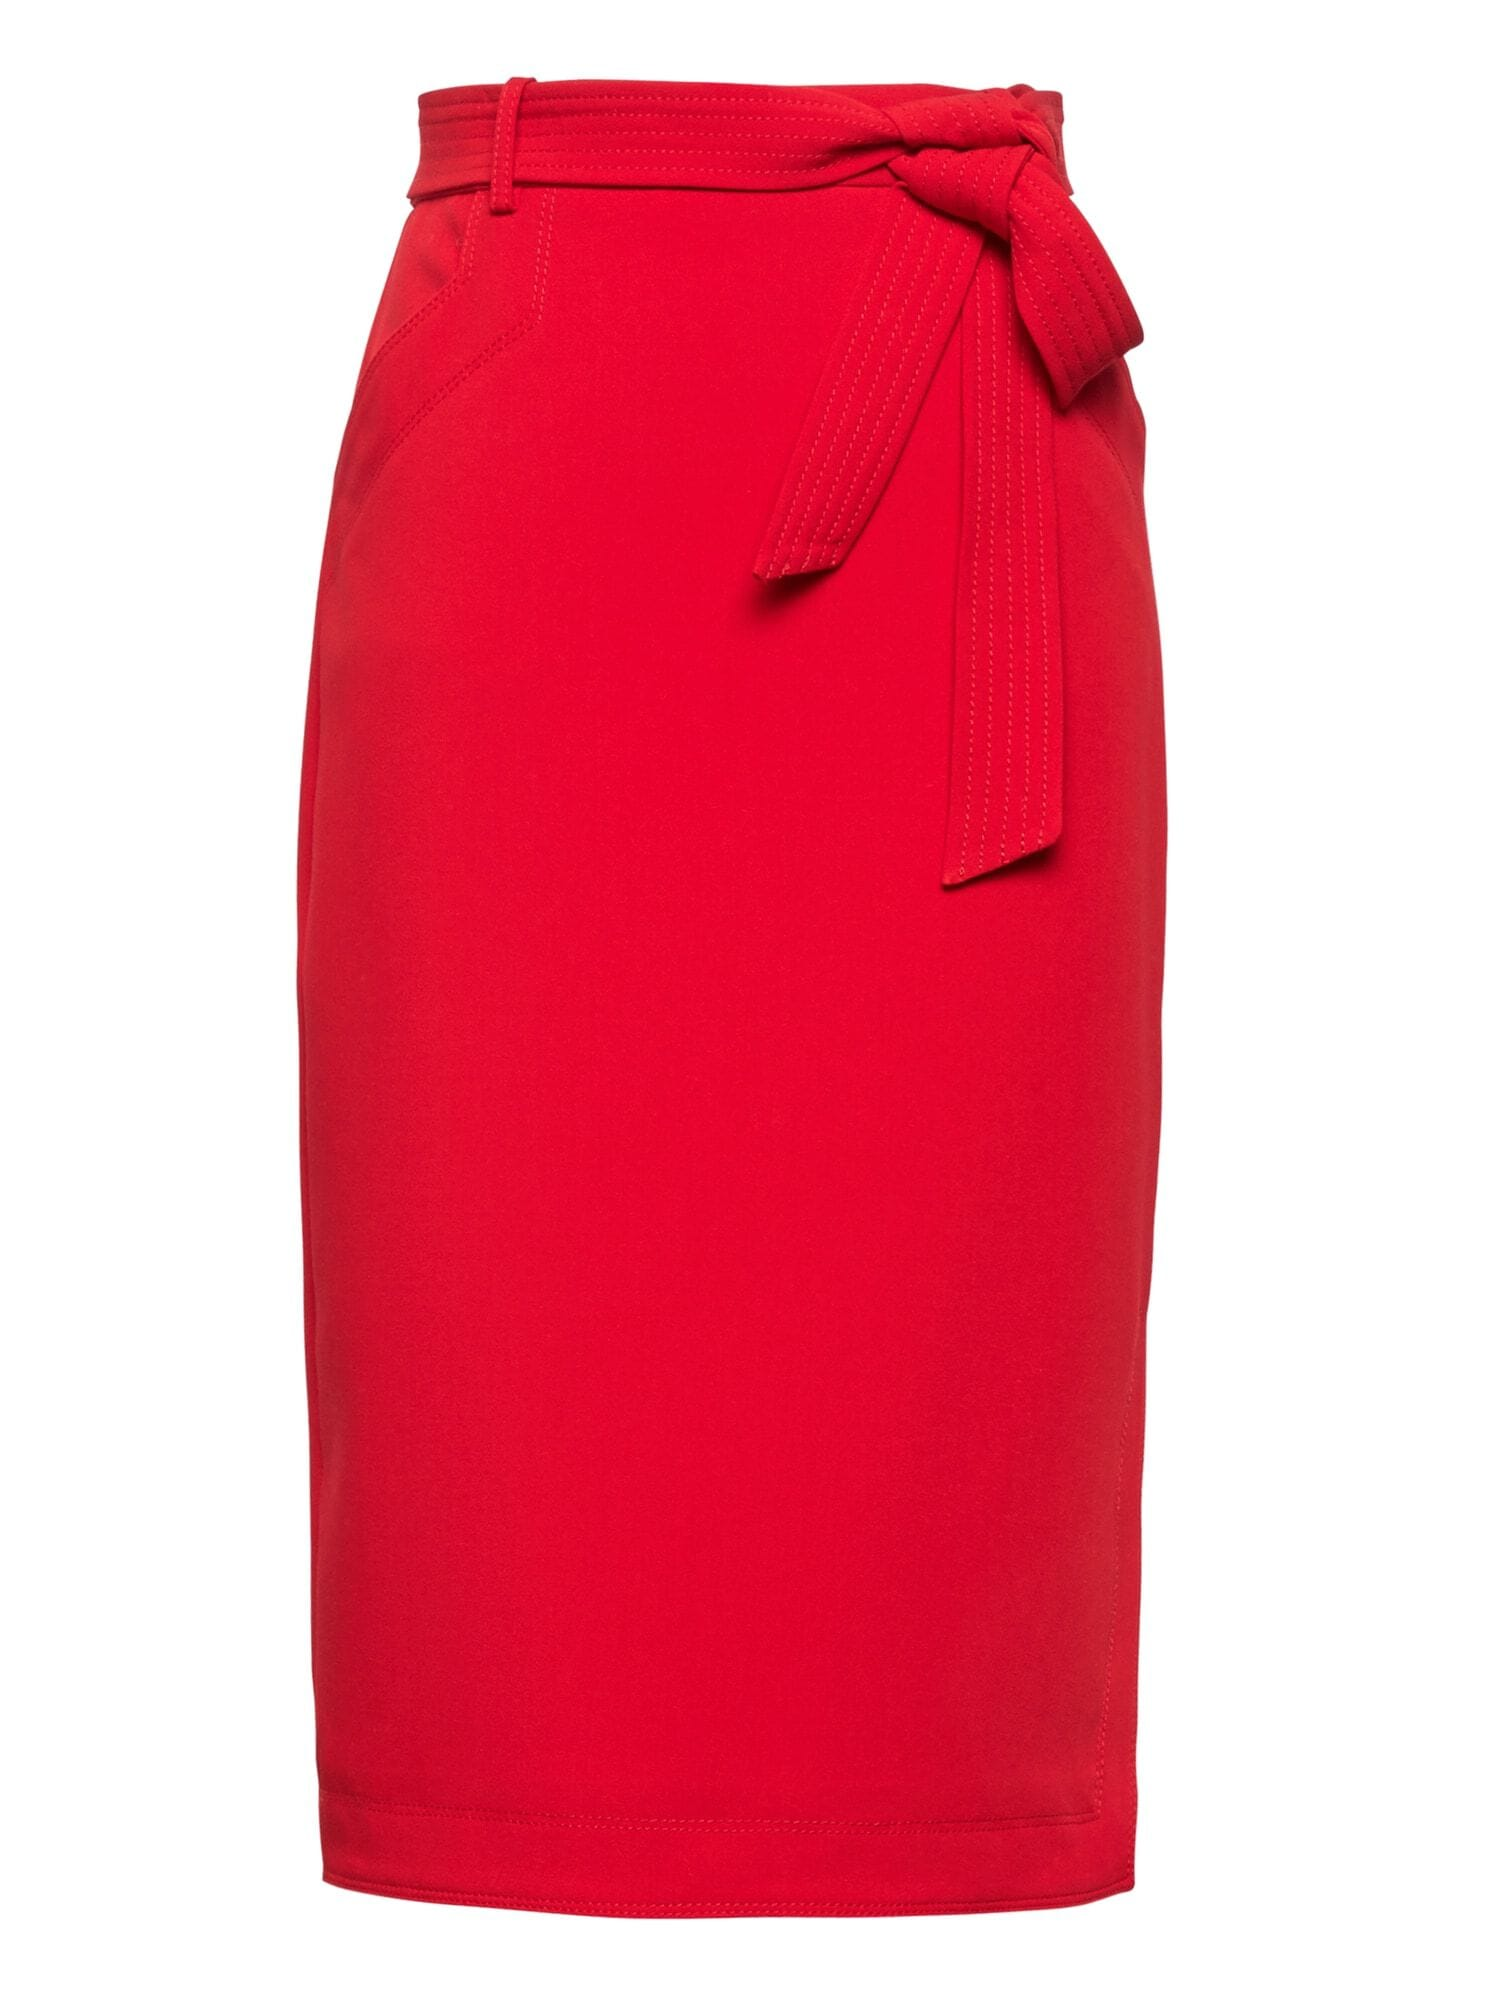 a17bc258f6 Petite Belted Pencil Skirt with Side Slit | Banana Republic® UK